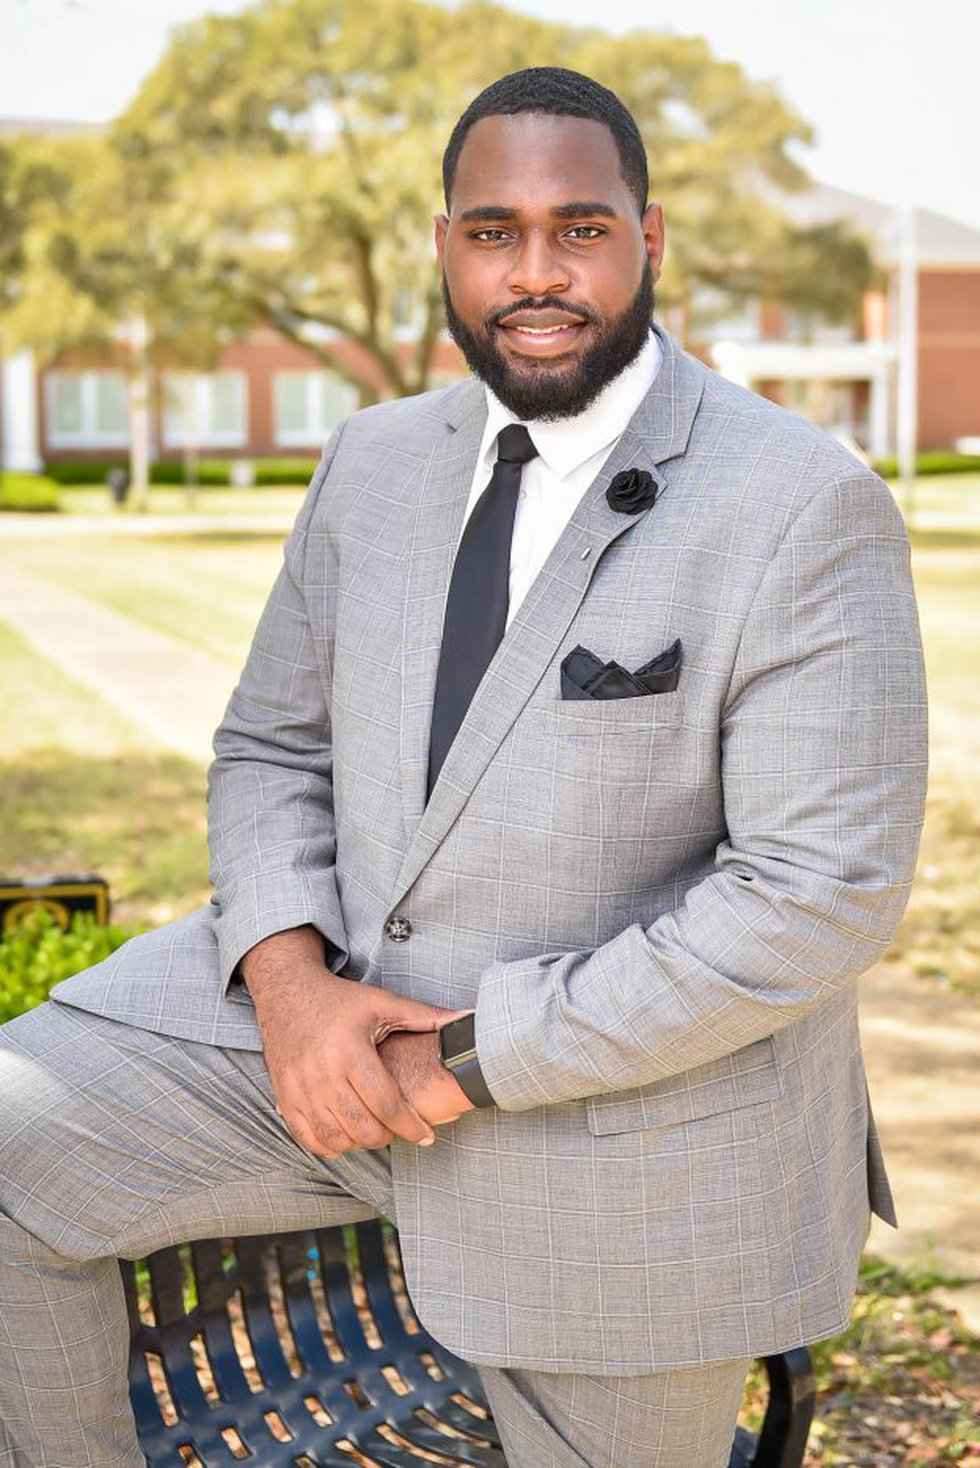 Steven Wilson is set to graduate from Grambling State University this week with his two brothers.